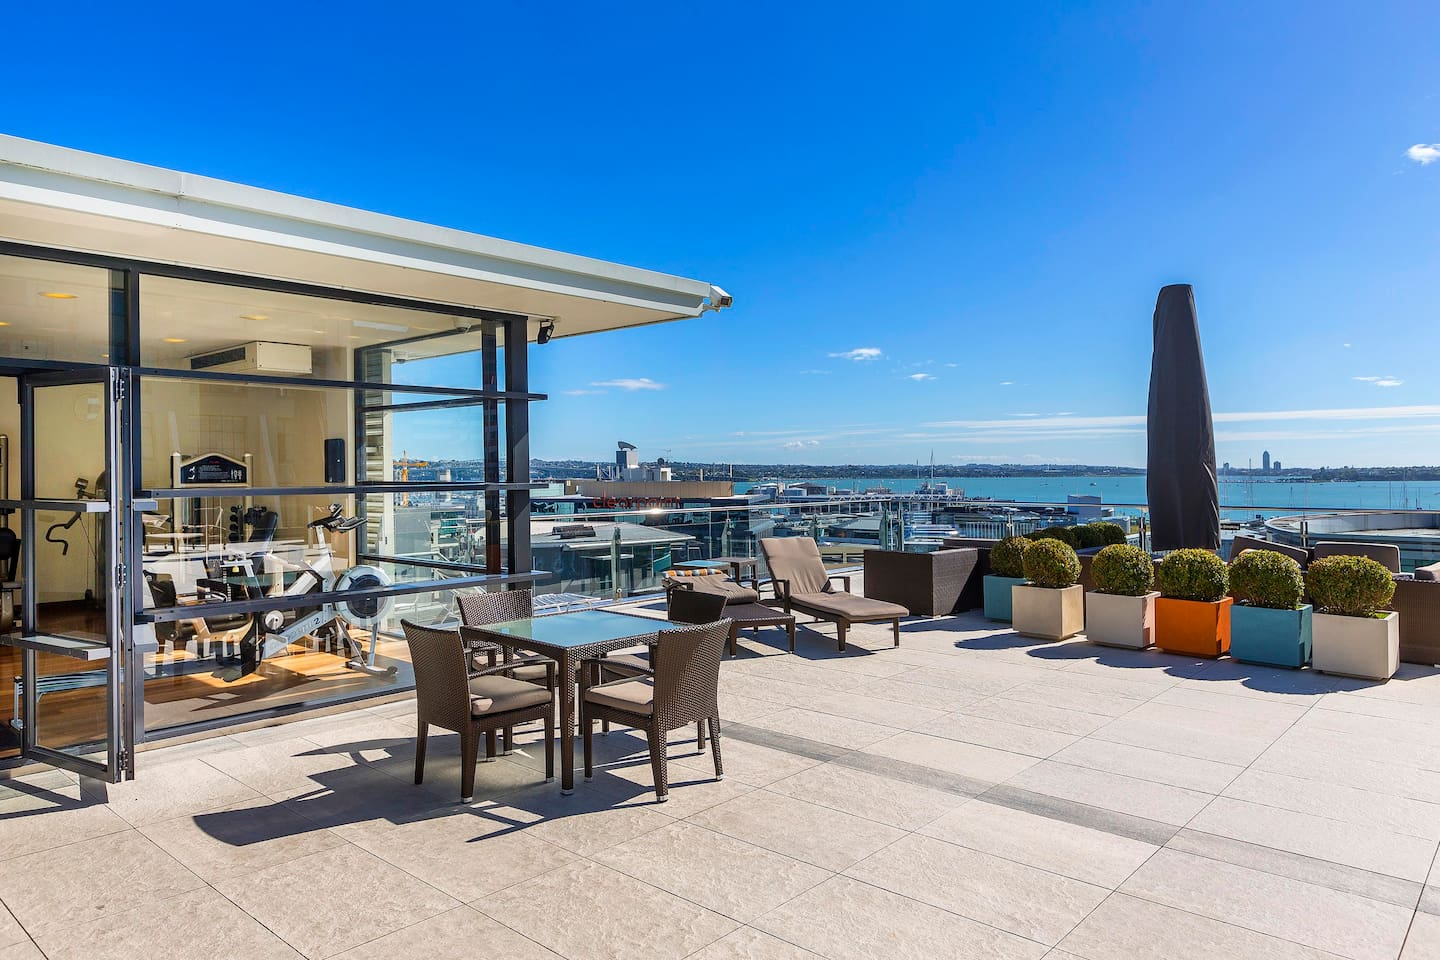 Heated rooftop pool and gym with views of the harbour, Harbour Bridge and the city